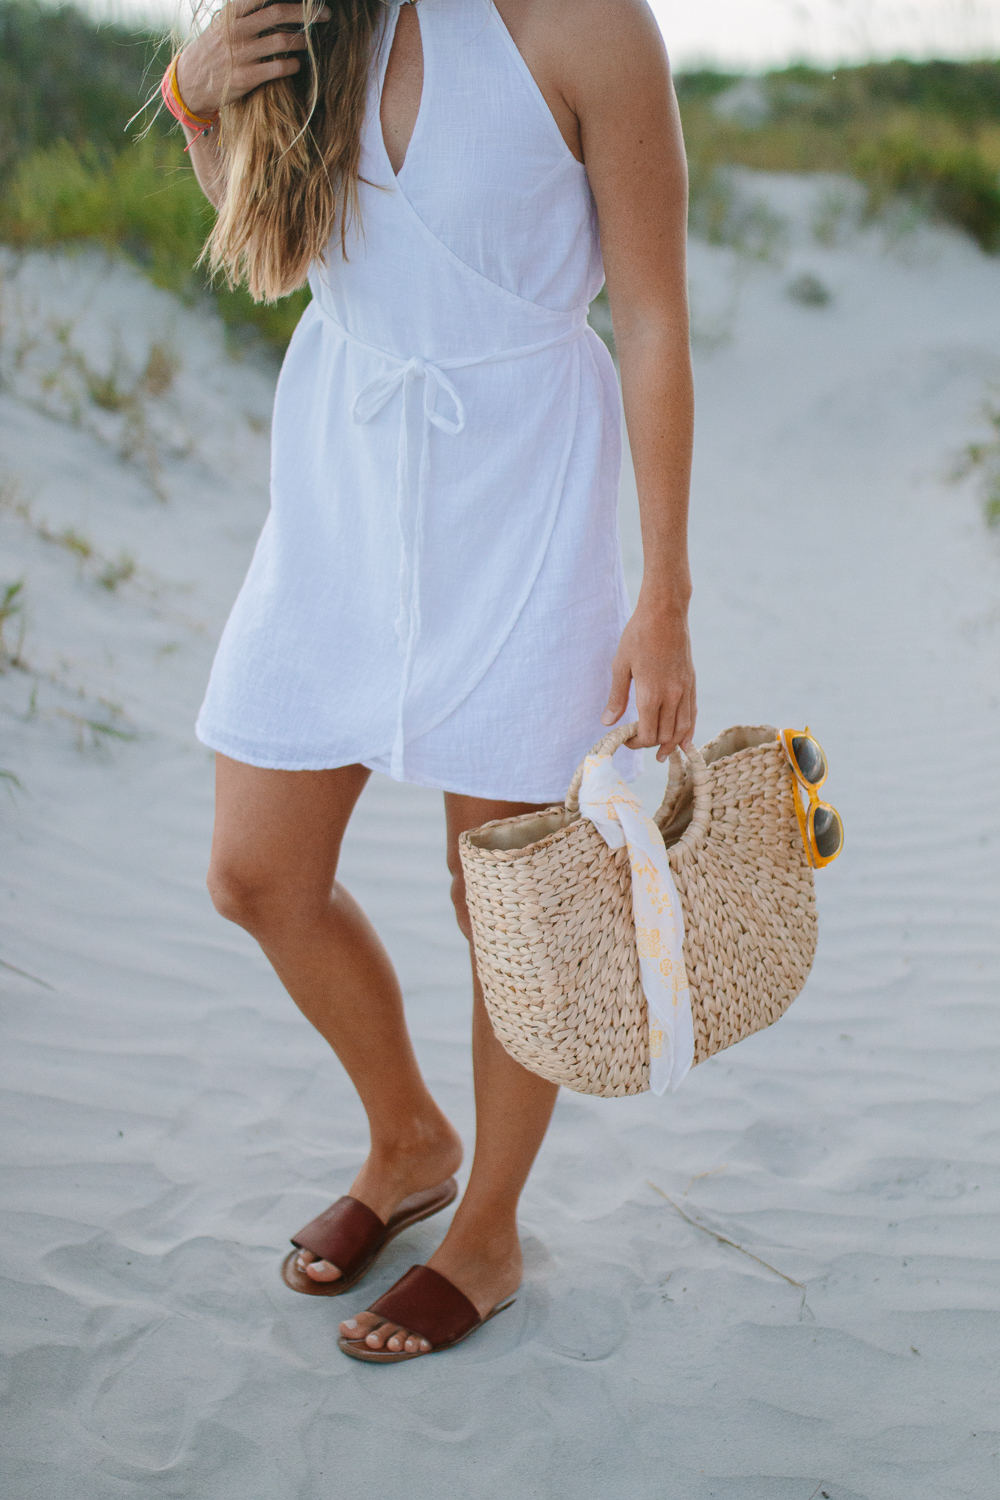 White Billabong Wrap Sundress with Straw Bag for Beach | Sunshine Style